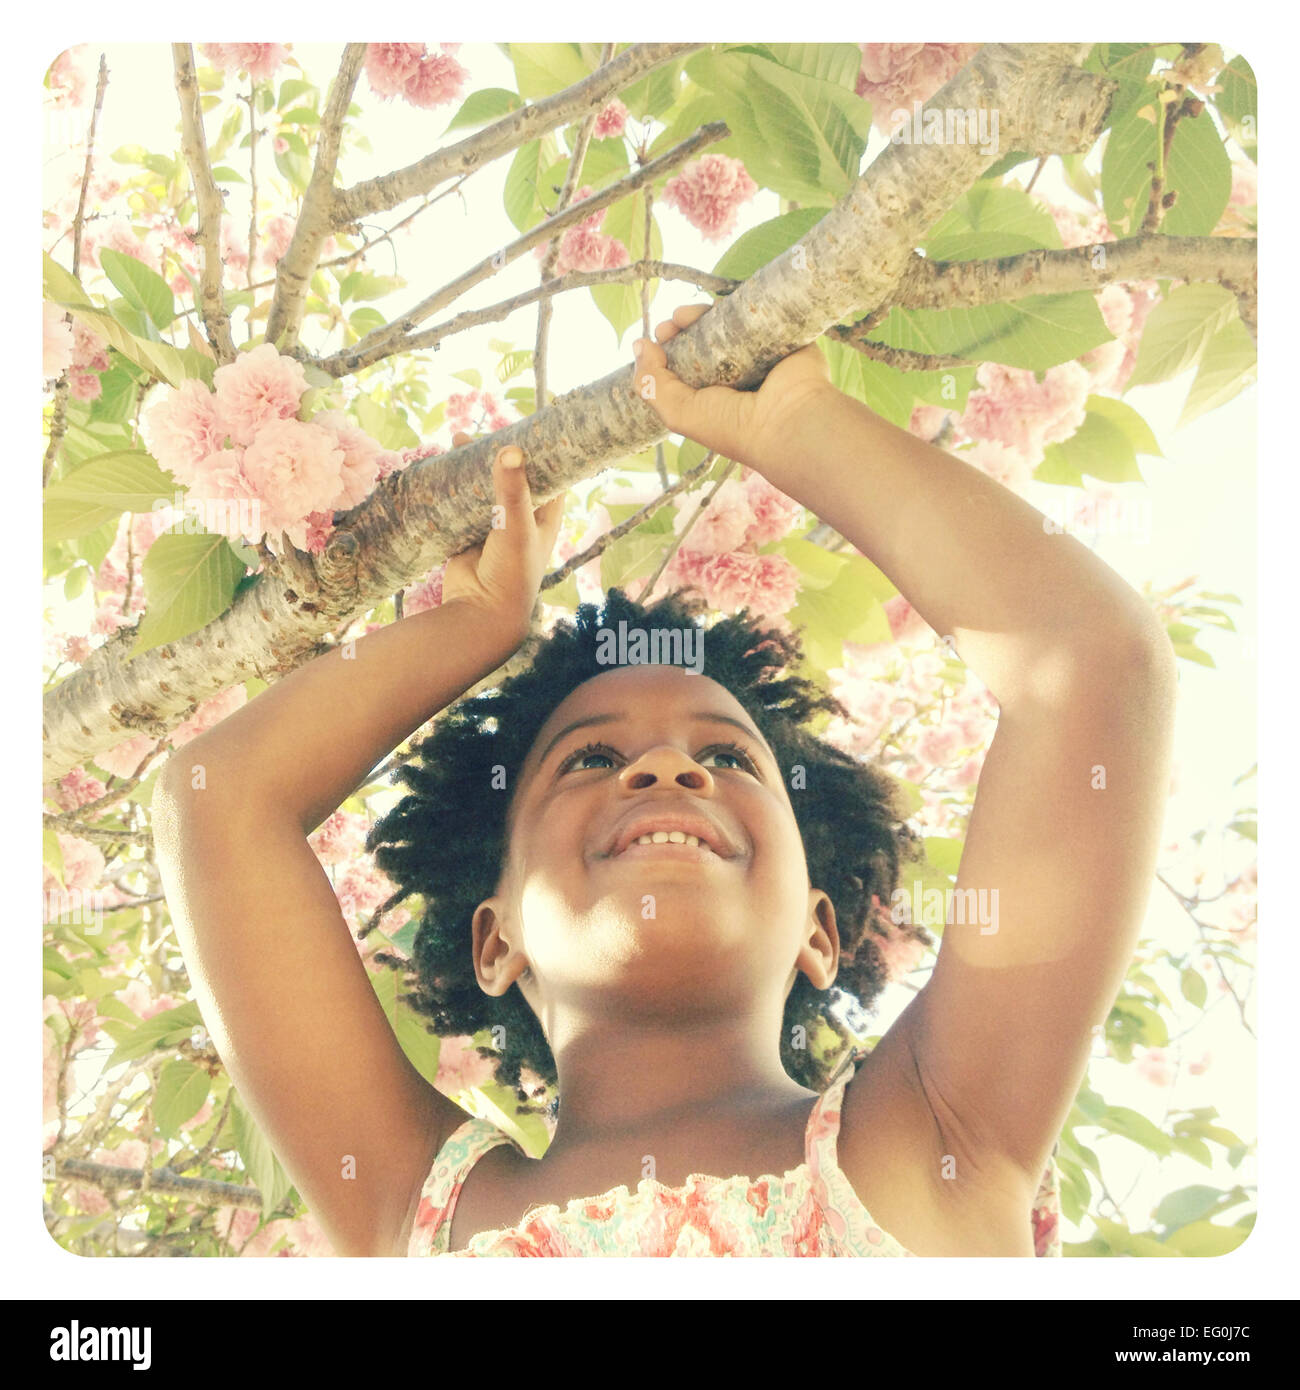 Girl holding branch of blossoming tree - Stock Image